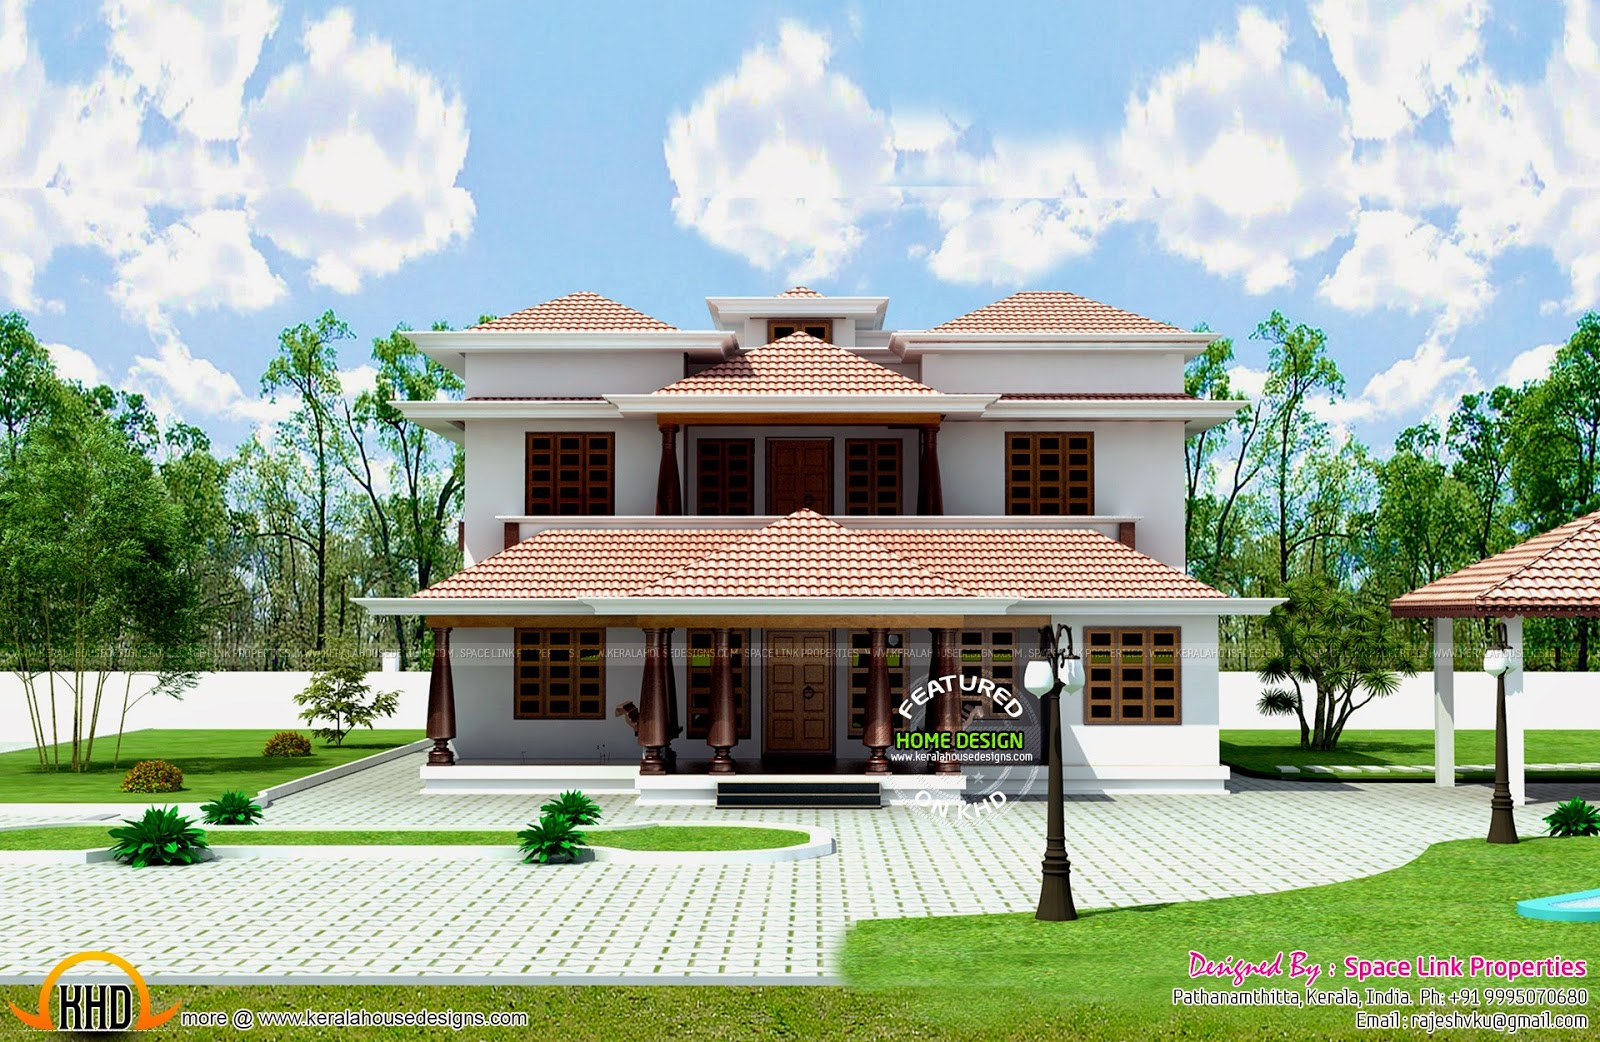 Fancy Typical Kerala Traditional House - Kerala Home Design And Floor Plans within Kerala Traditional House Plans With Photos